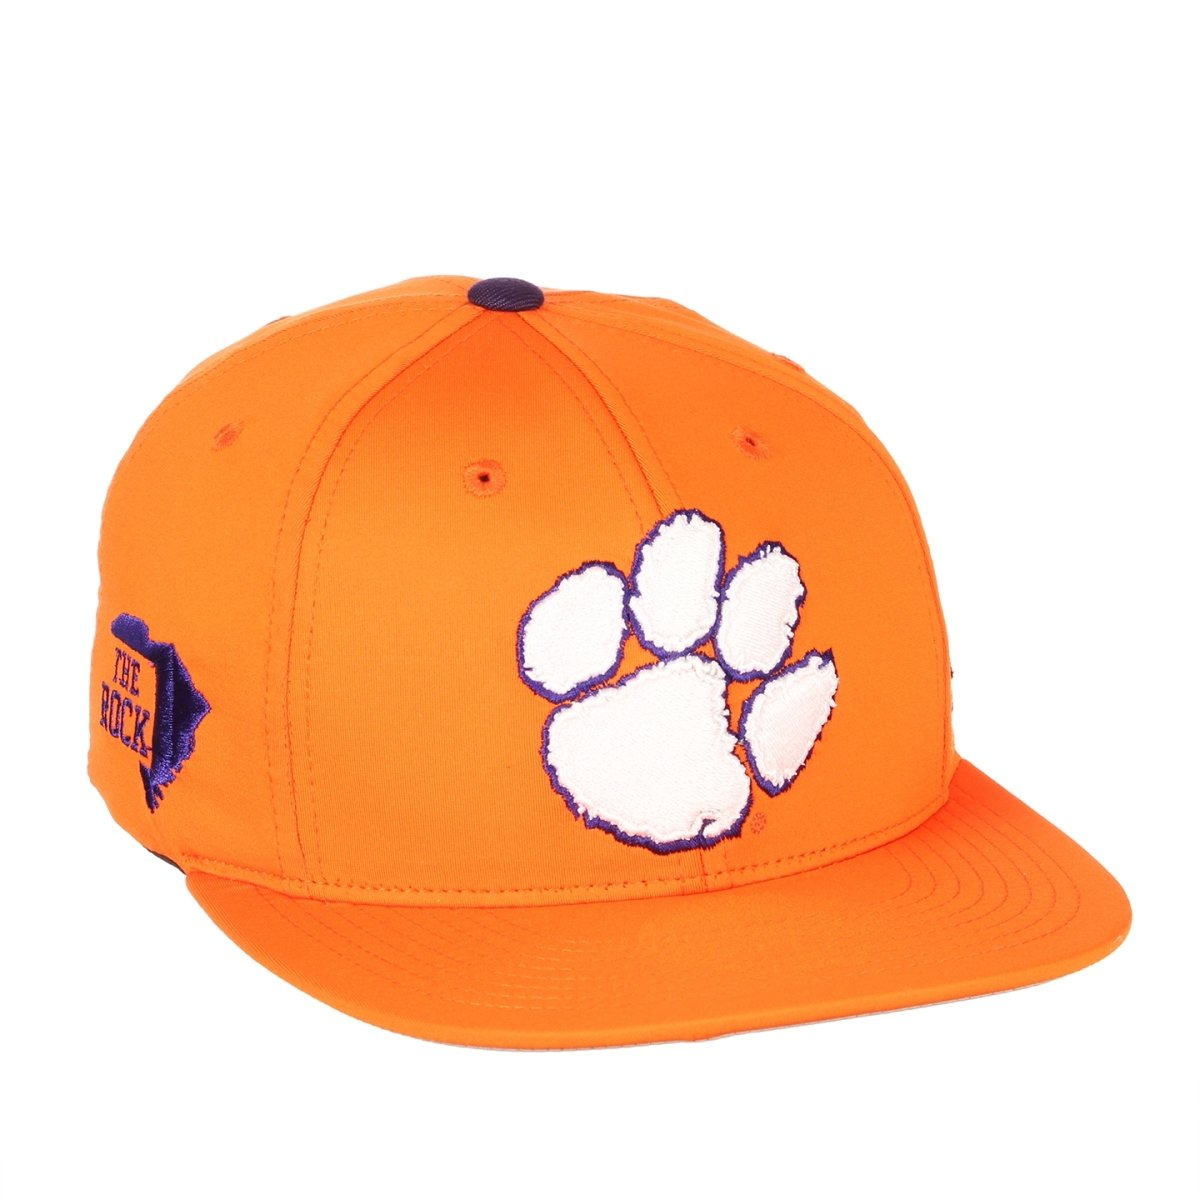 Clemson Tigers the Rock Fleet Fitted Baseball Cap - Orange - Mr. Knickerbocker